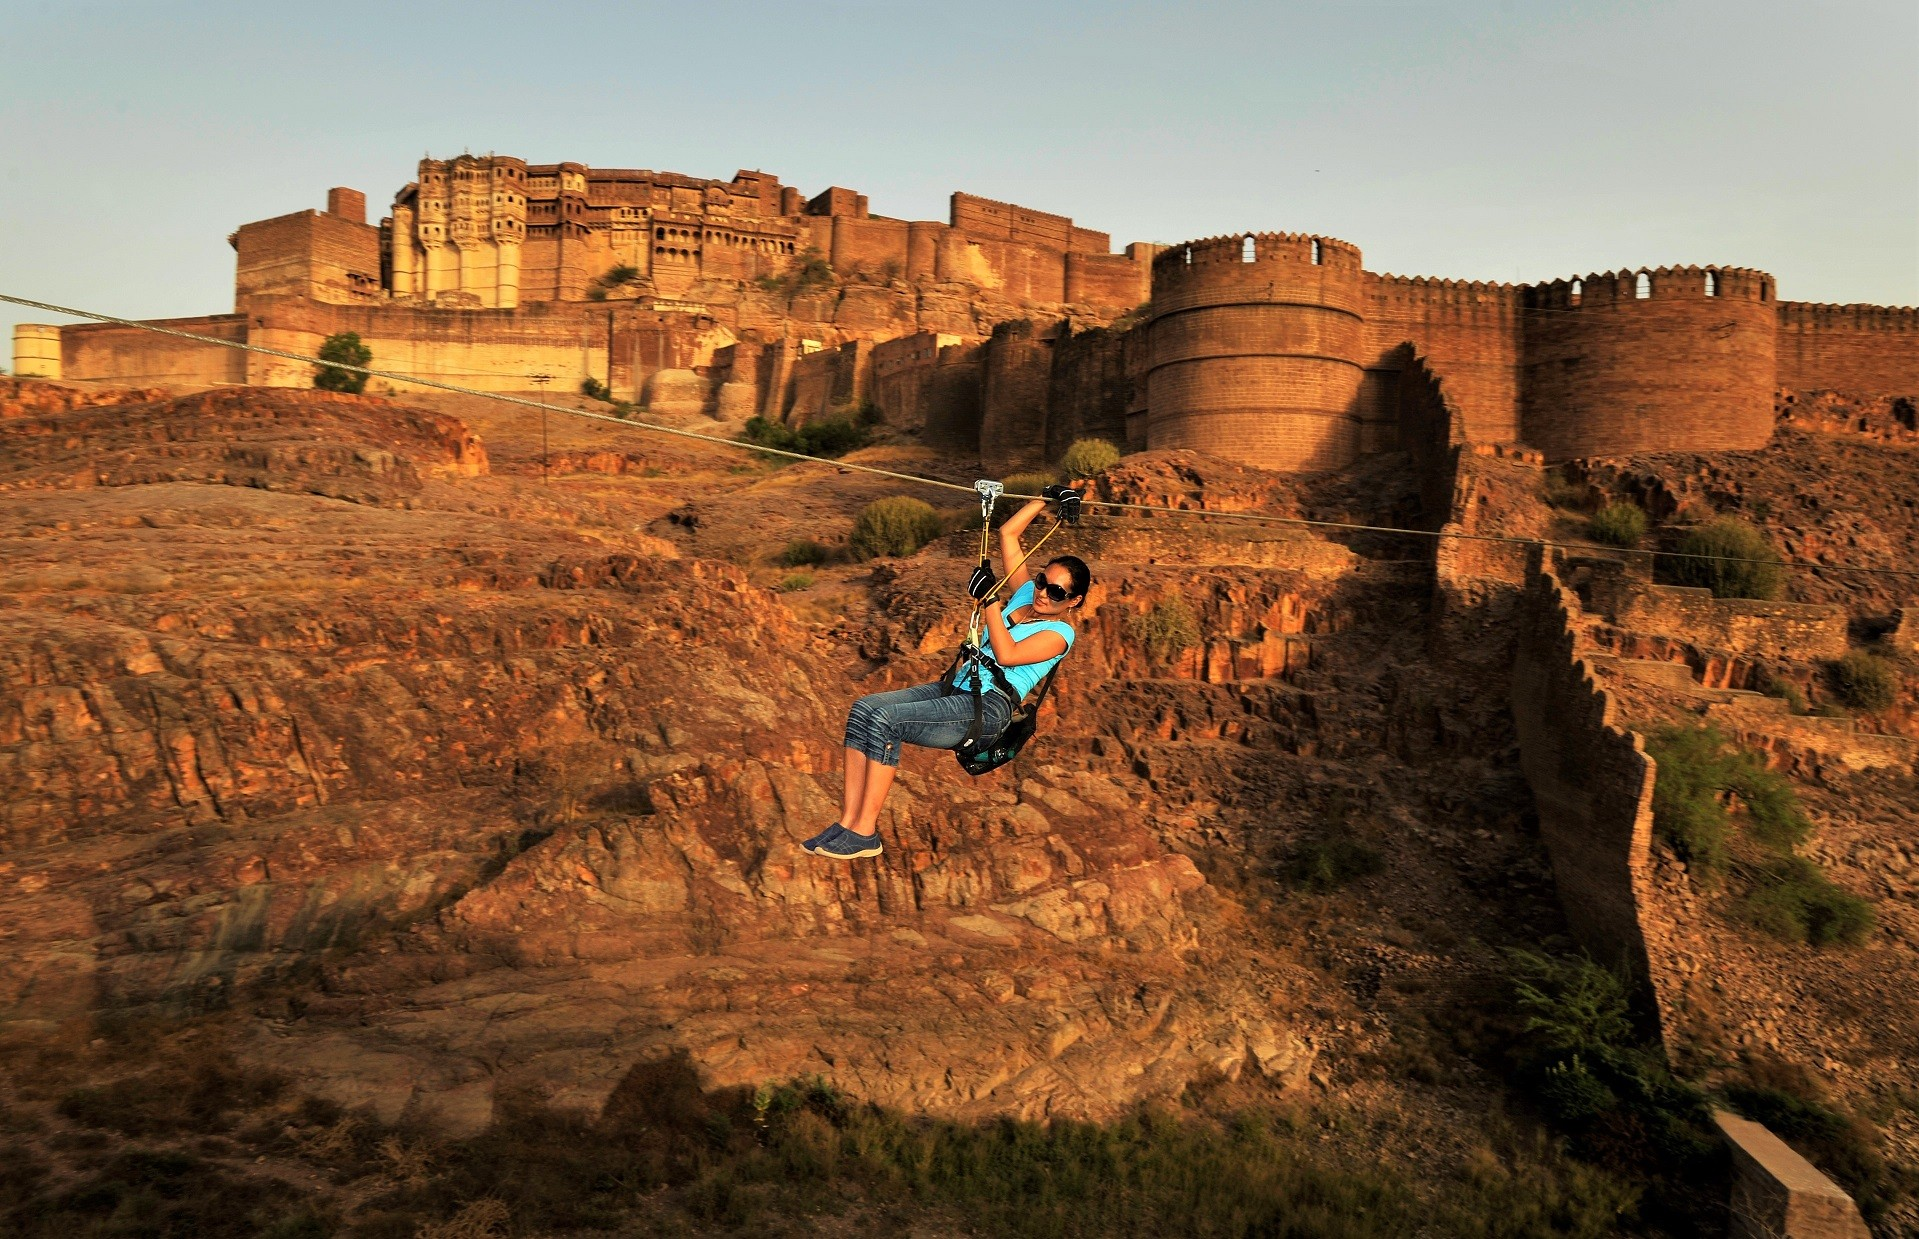 Awesome Photo Of Travelers In India